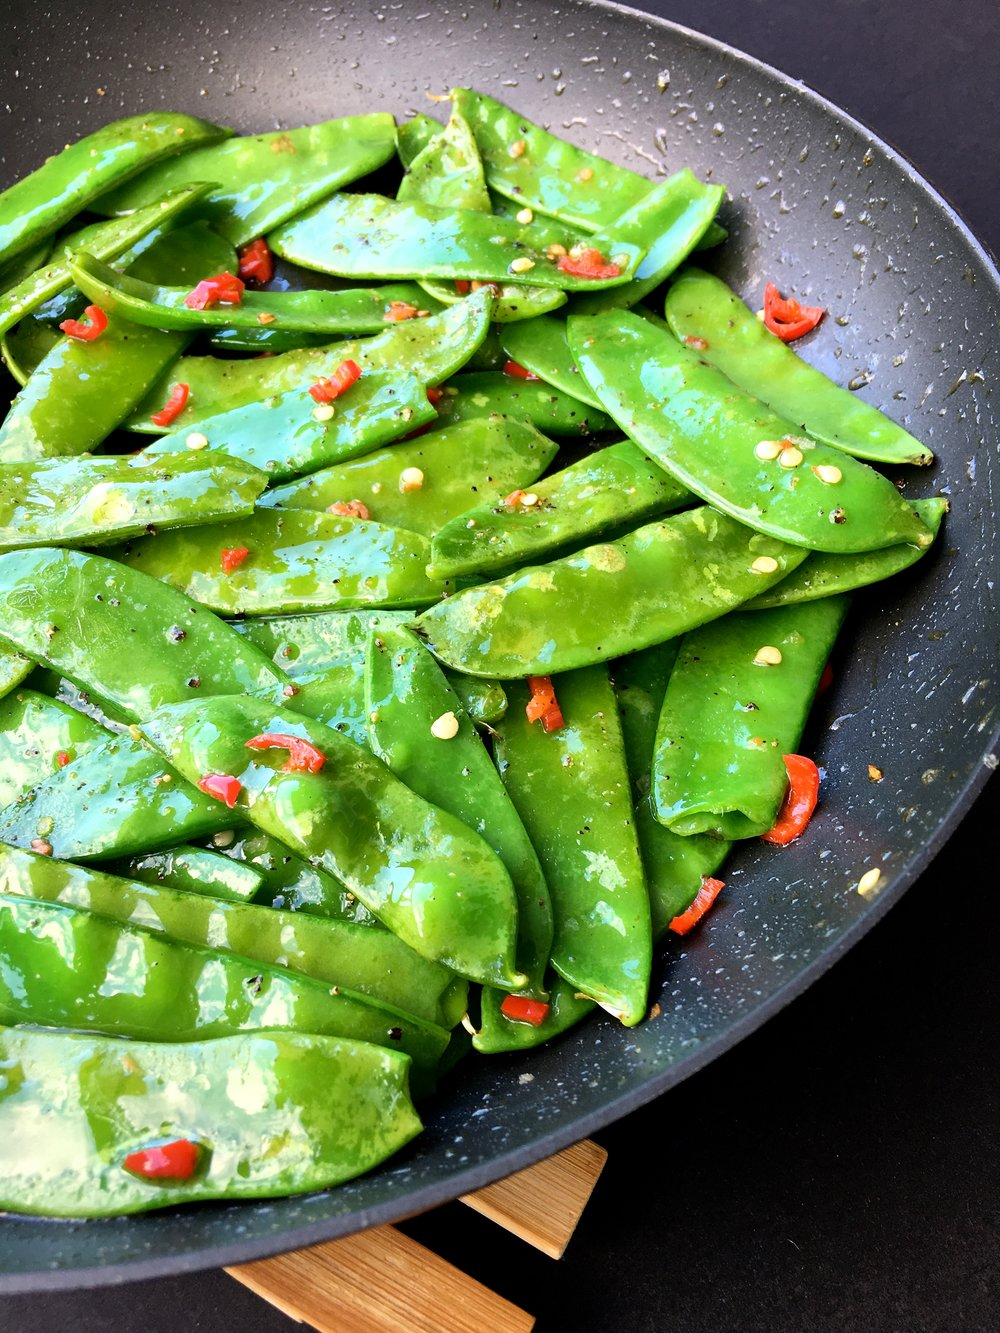 Healthy Saute chilli snow peas recipe.jpg